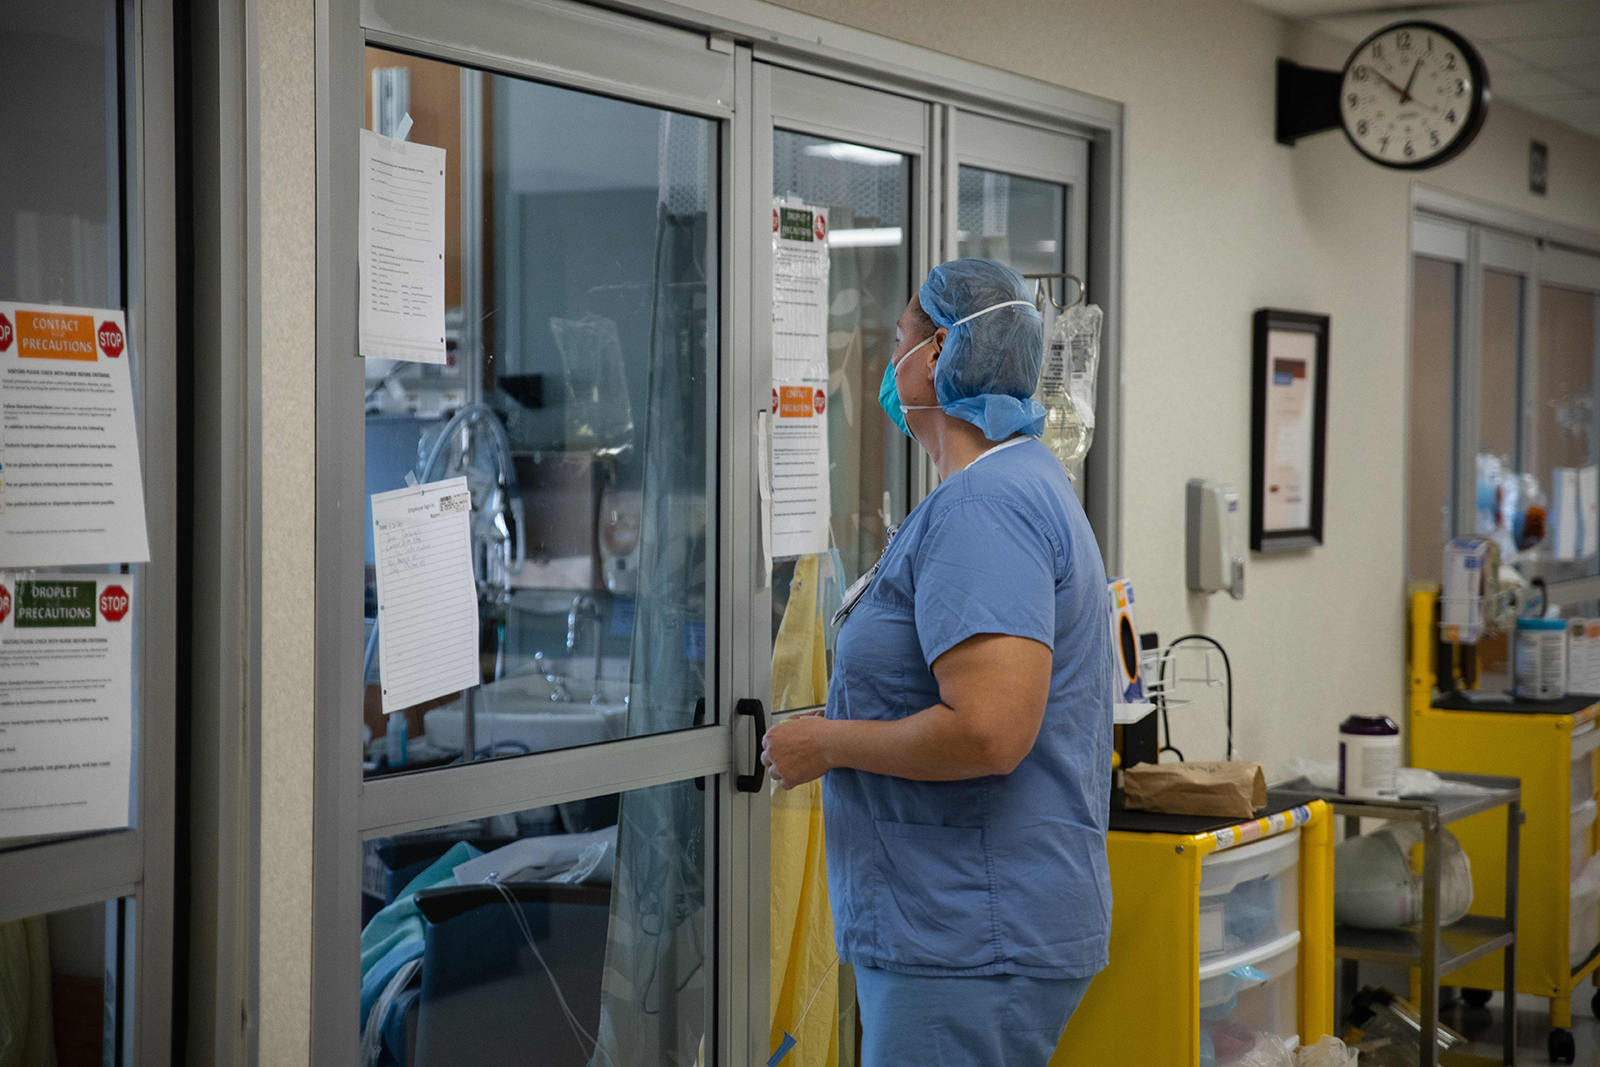 A health care worker prepares to enter a Covid-19 patient's room in the ICU at Van Wert County Hospital in Van Wert, Ohio on Nov. 20.